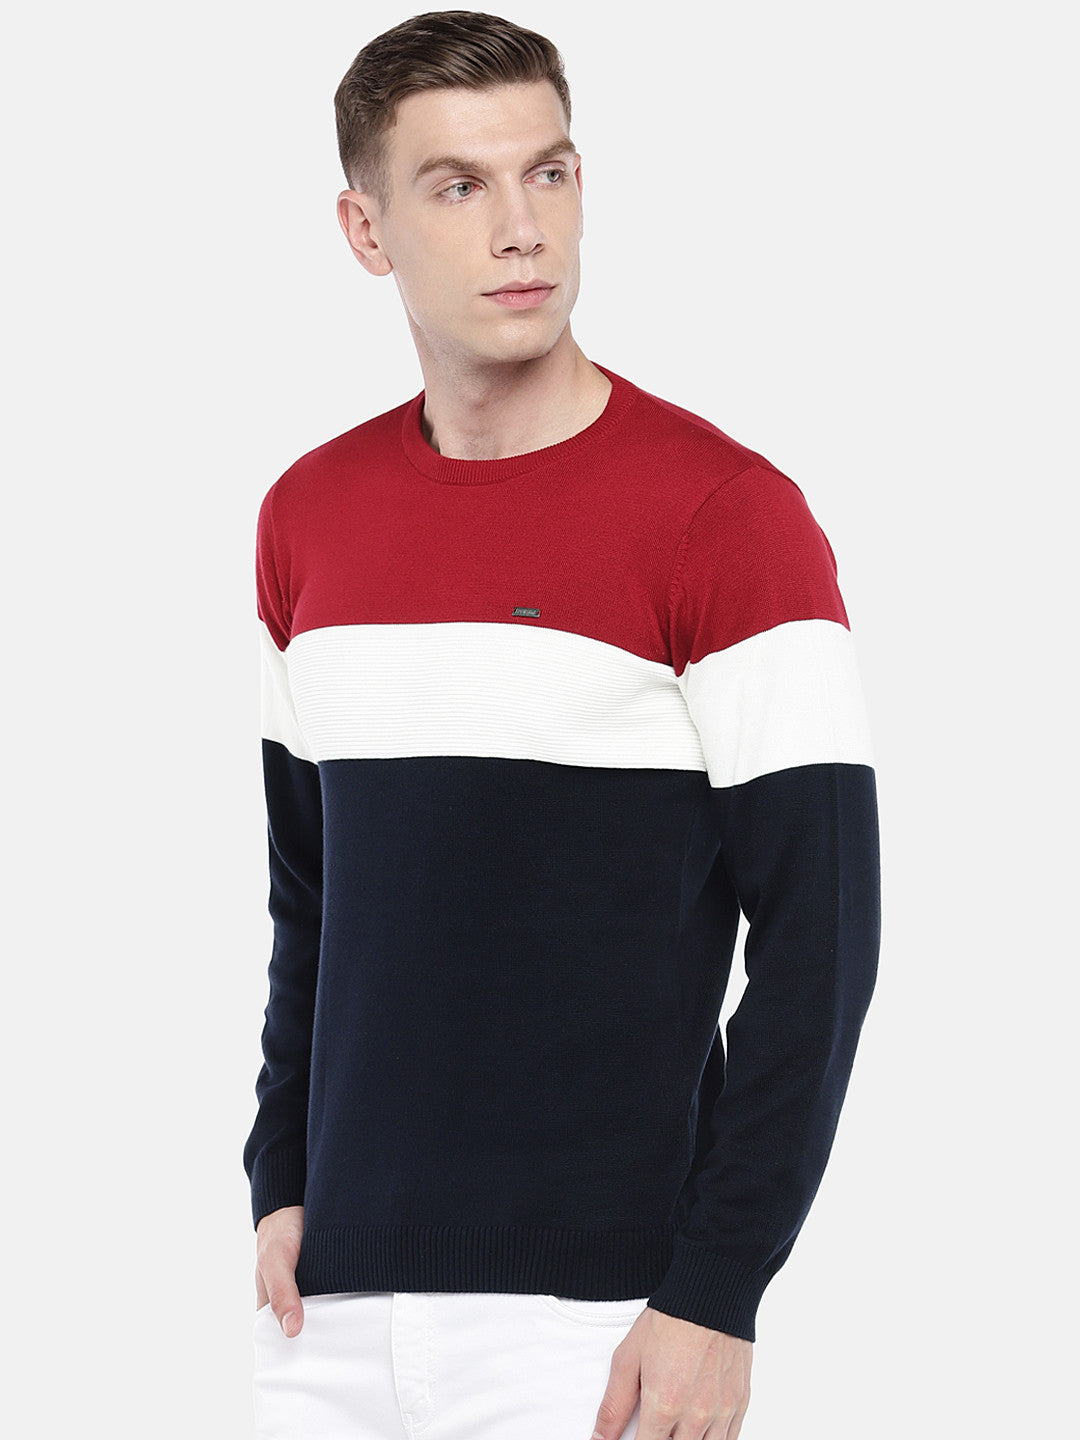 Navy Blue & Red Colourblocked Sweater-2